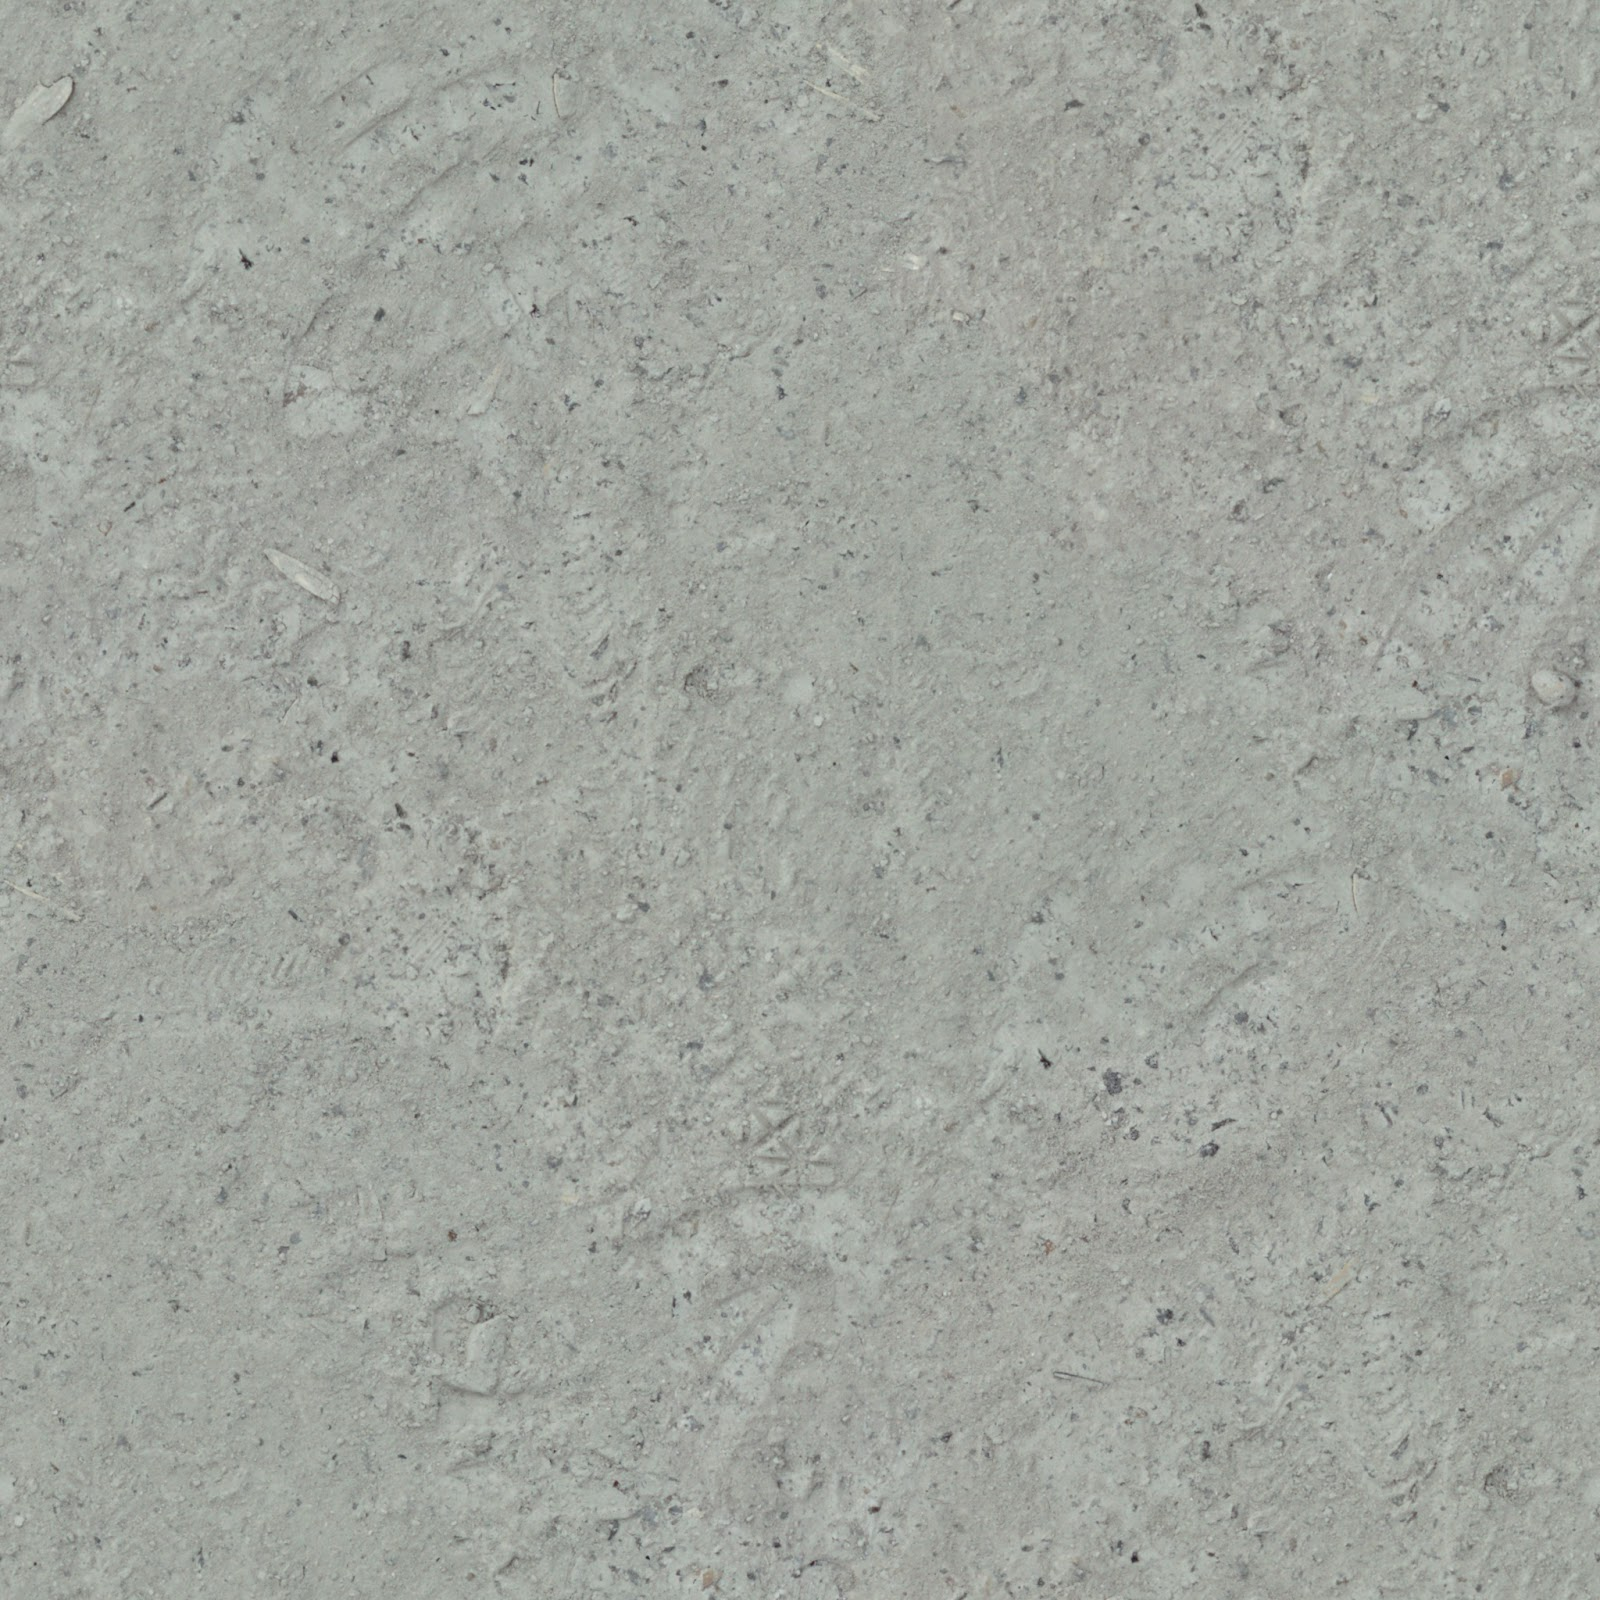 High Resolution Seamless Textures Concrete 18 Dusty